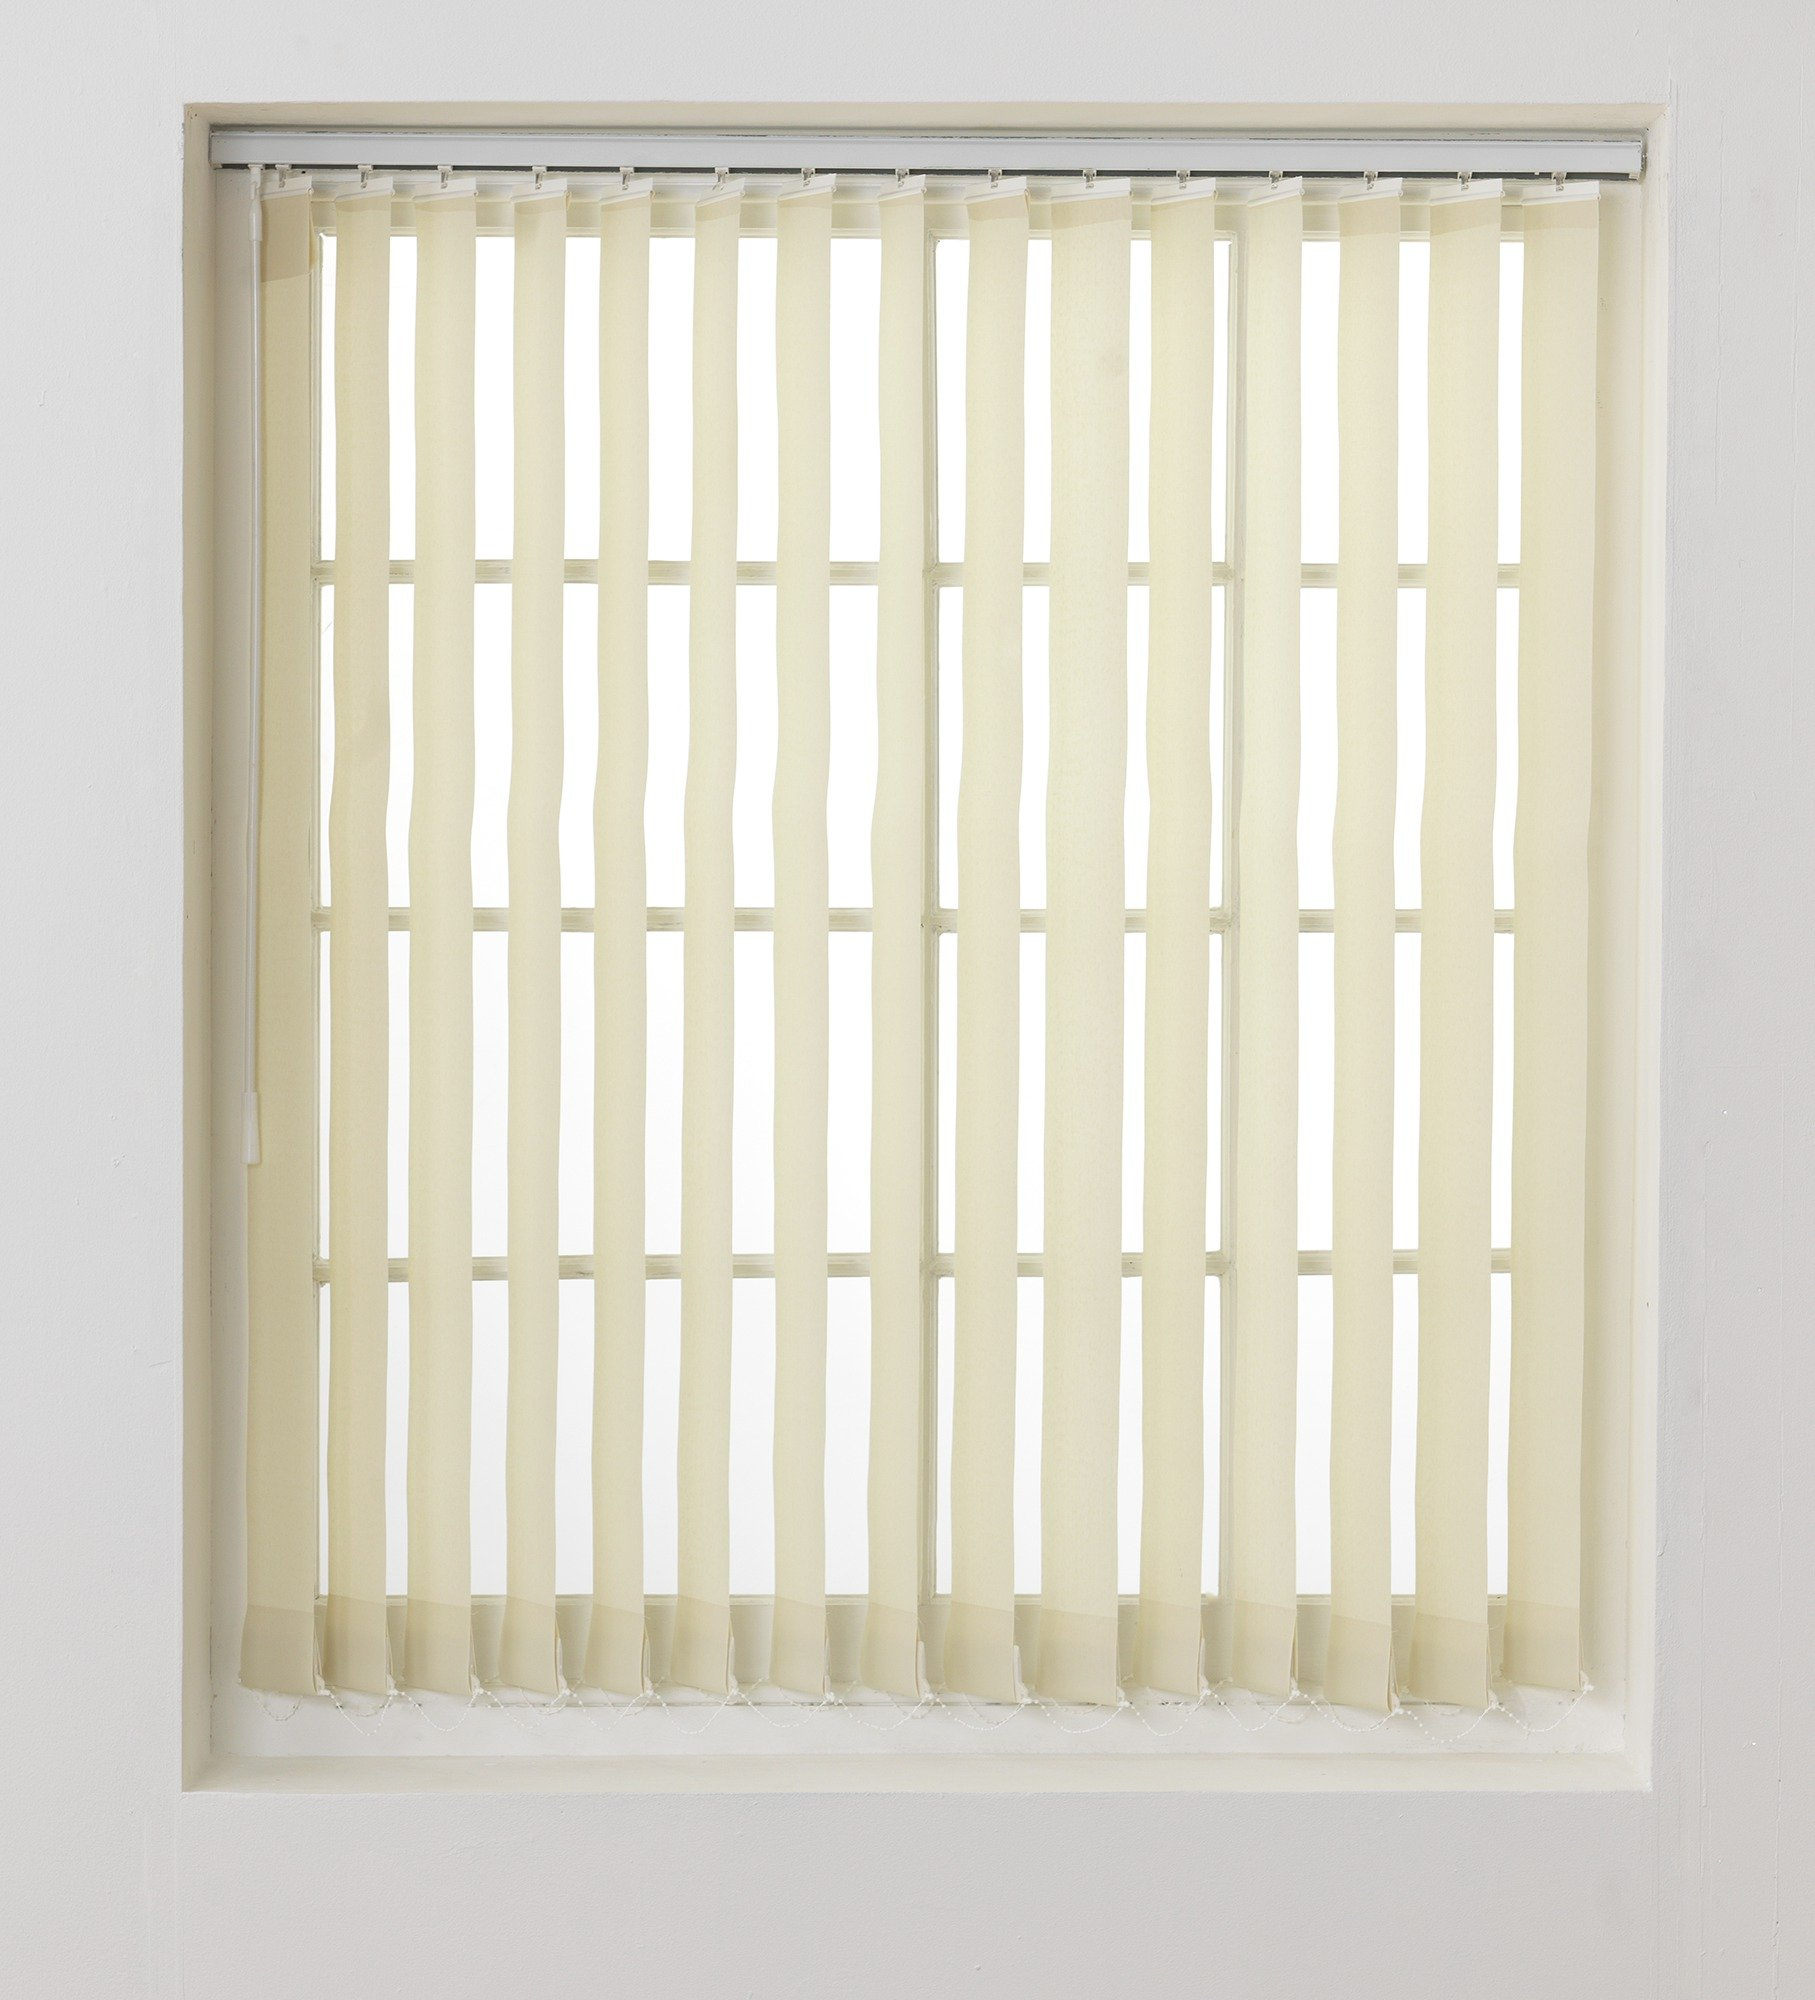 Argos Home Vertical Blind Slats Pack - 4.5ft - Cream